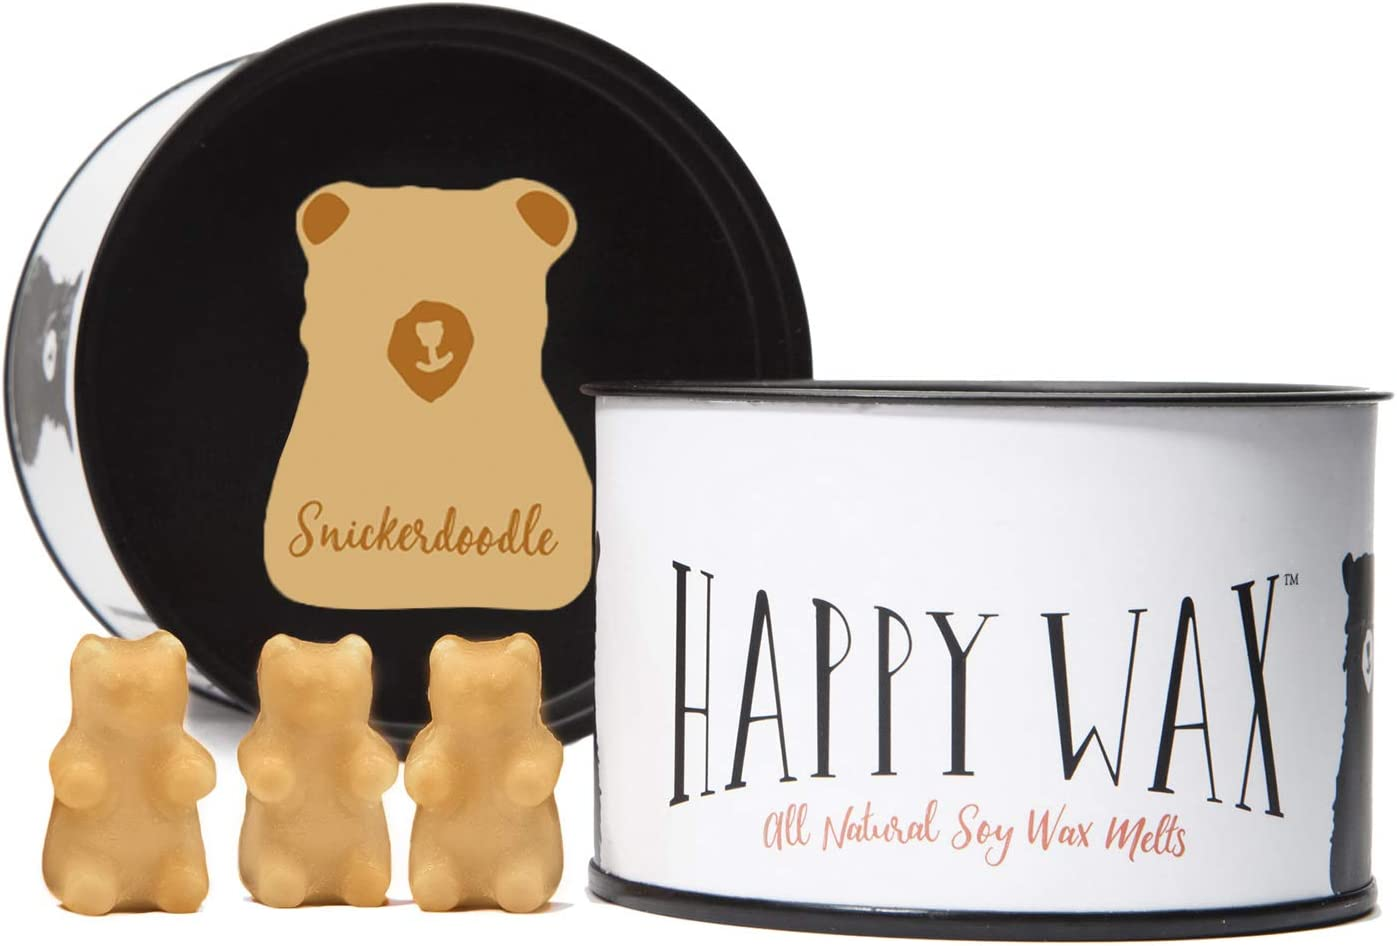 Happy Wax Snickerdoodle Soy Wax Melts - Scented Wax Melts Infused with Essential Oils - Cute Bear Shapes Perfect for Melting in Your Wax Melt, Cube, or Tart Warmer (3.6-Oz. Classic Tin)